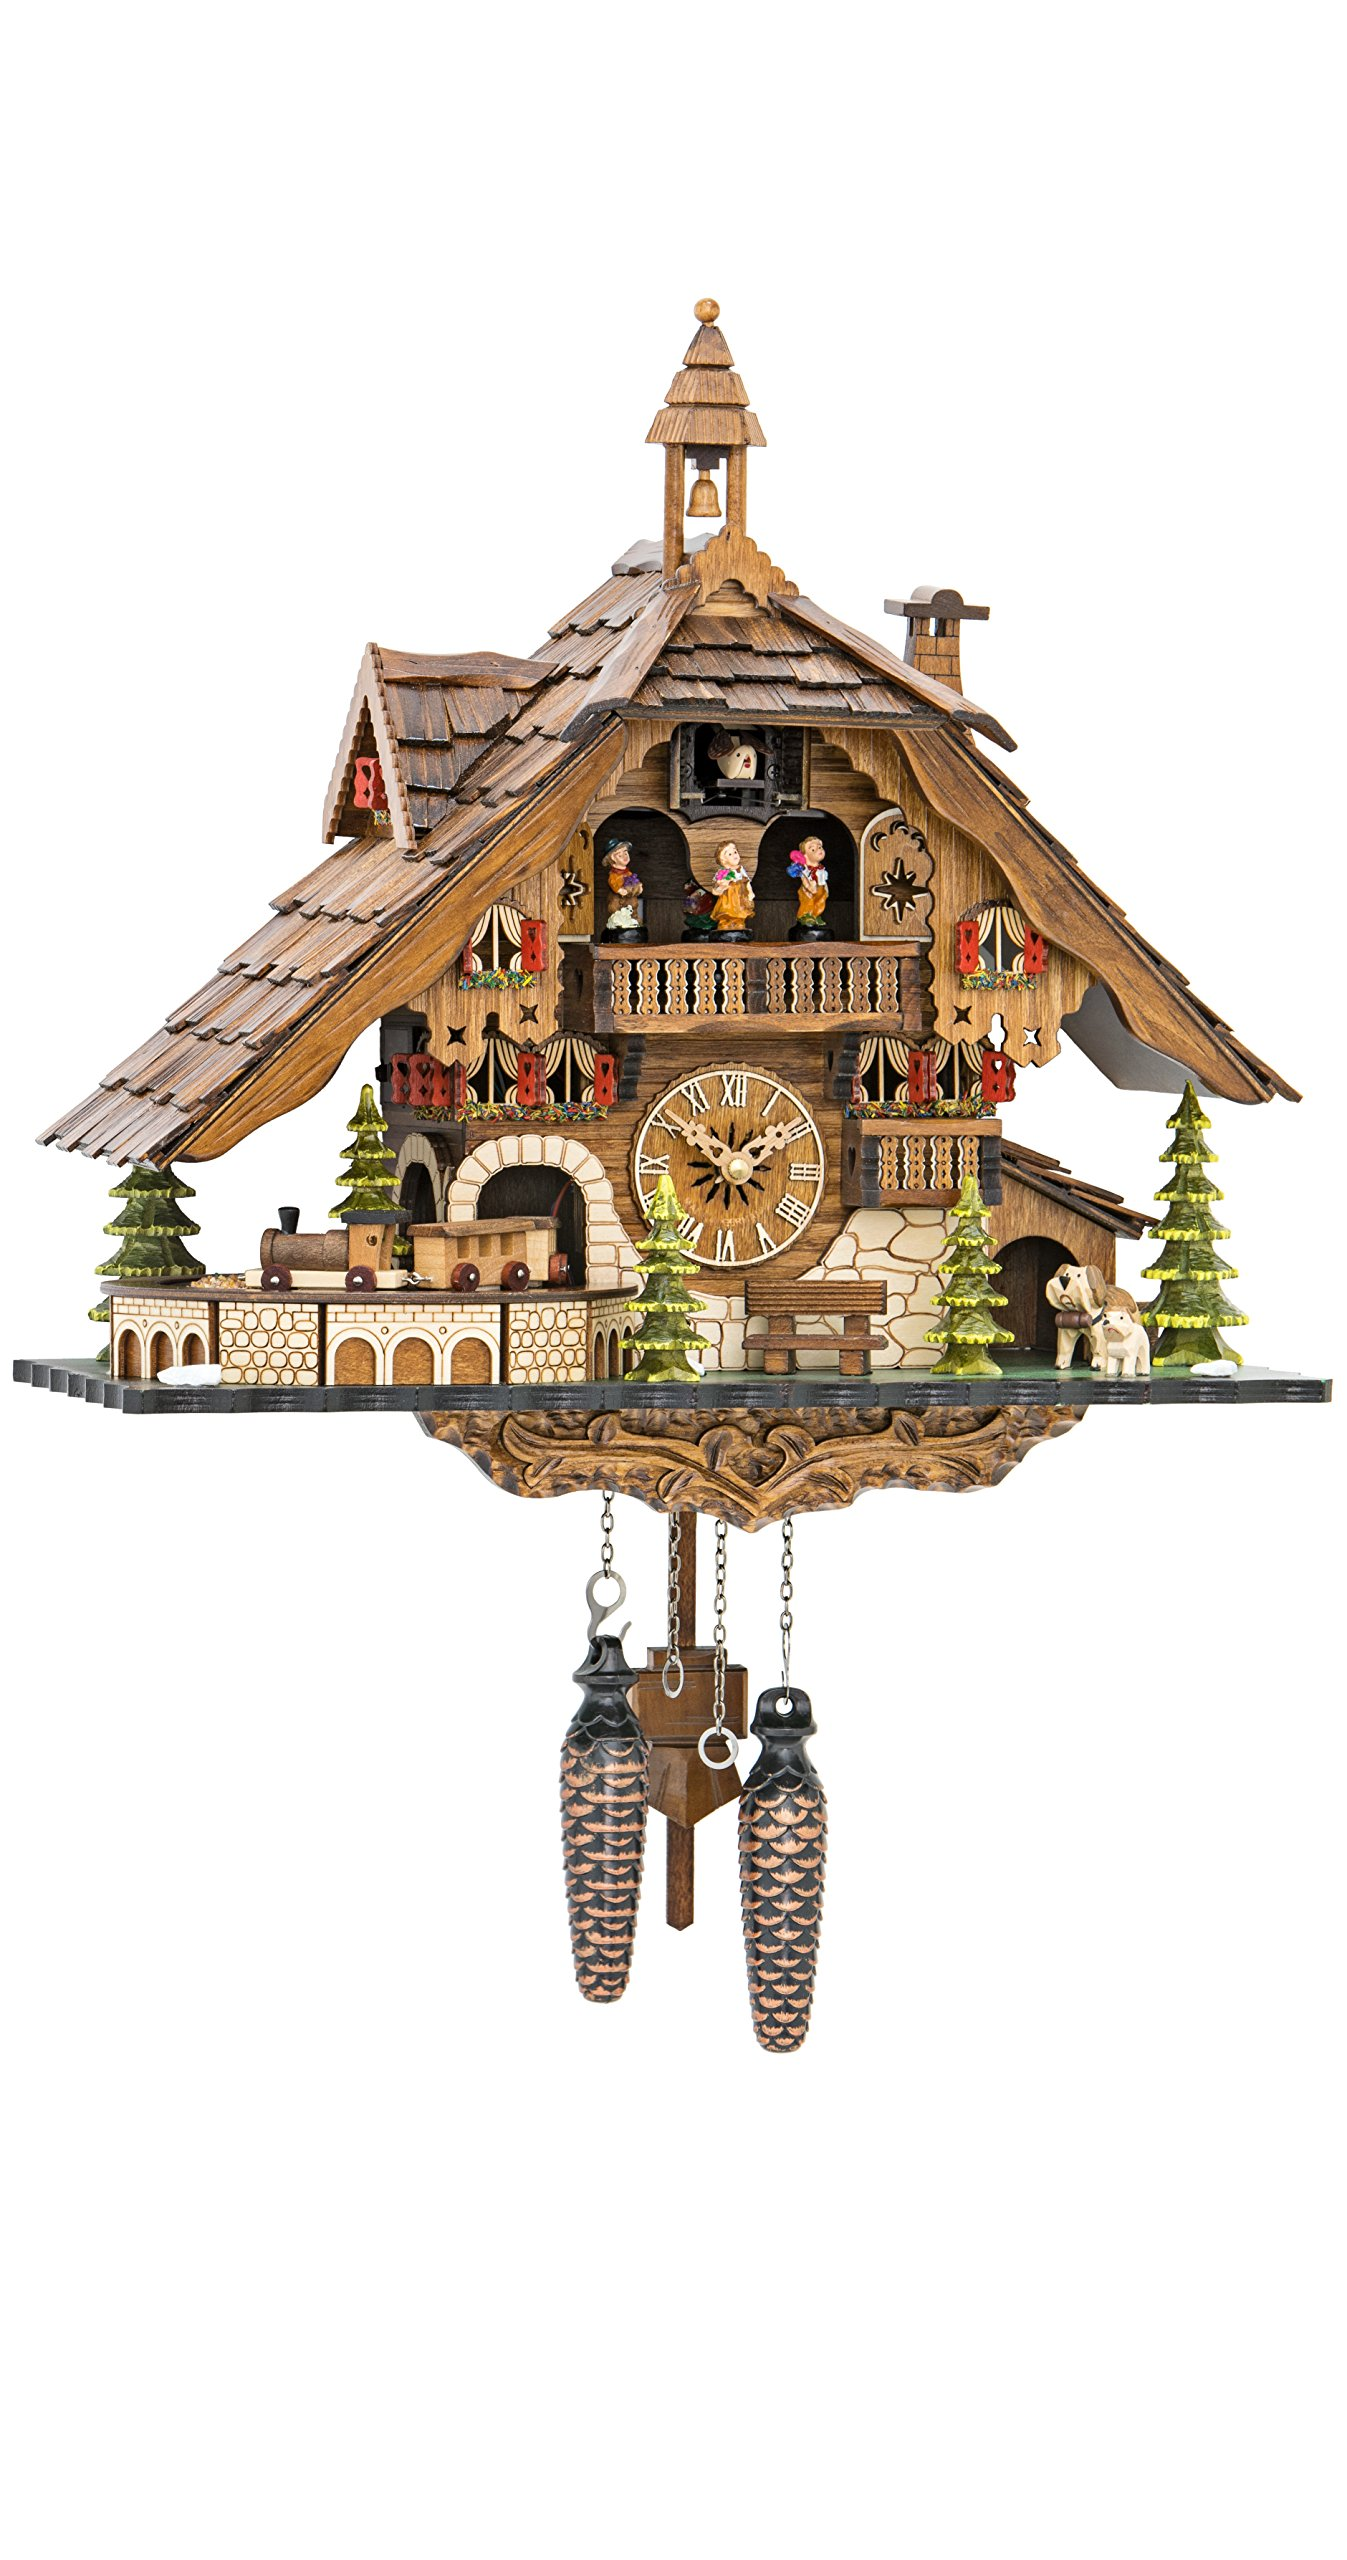 Quartz Cuckoo Clock Black Forest house with moving train, with music EN 48110 QMT by ISDD Cuckoo Clocks